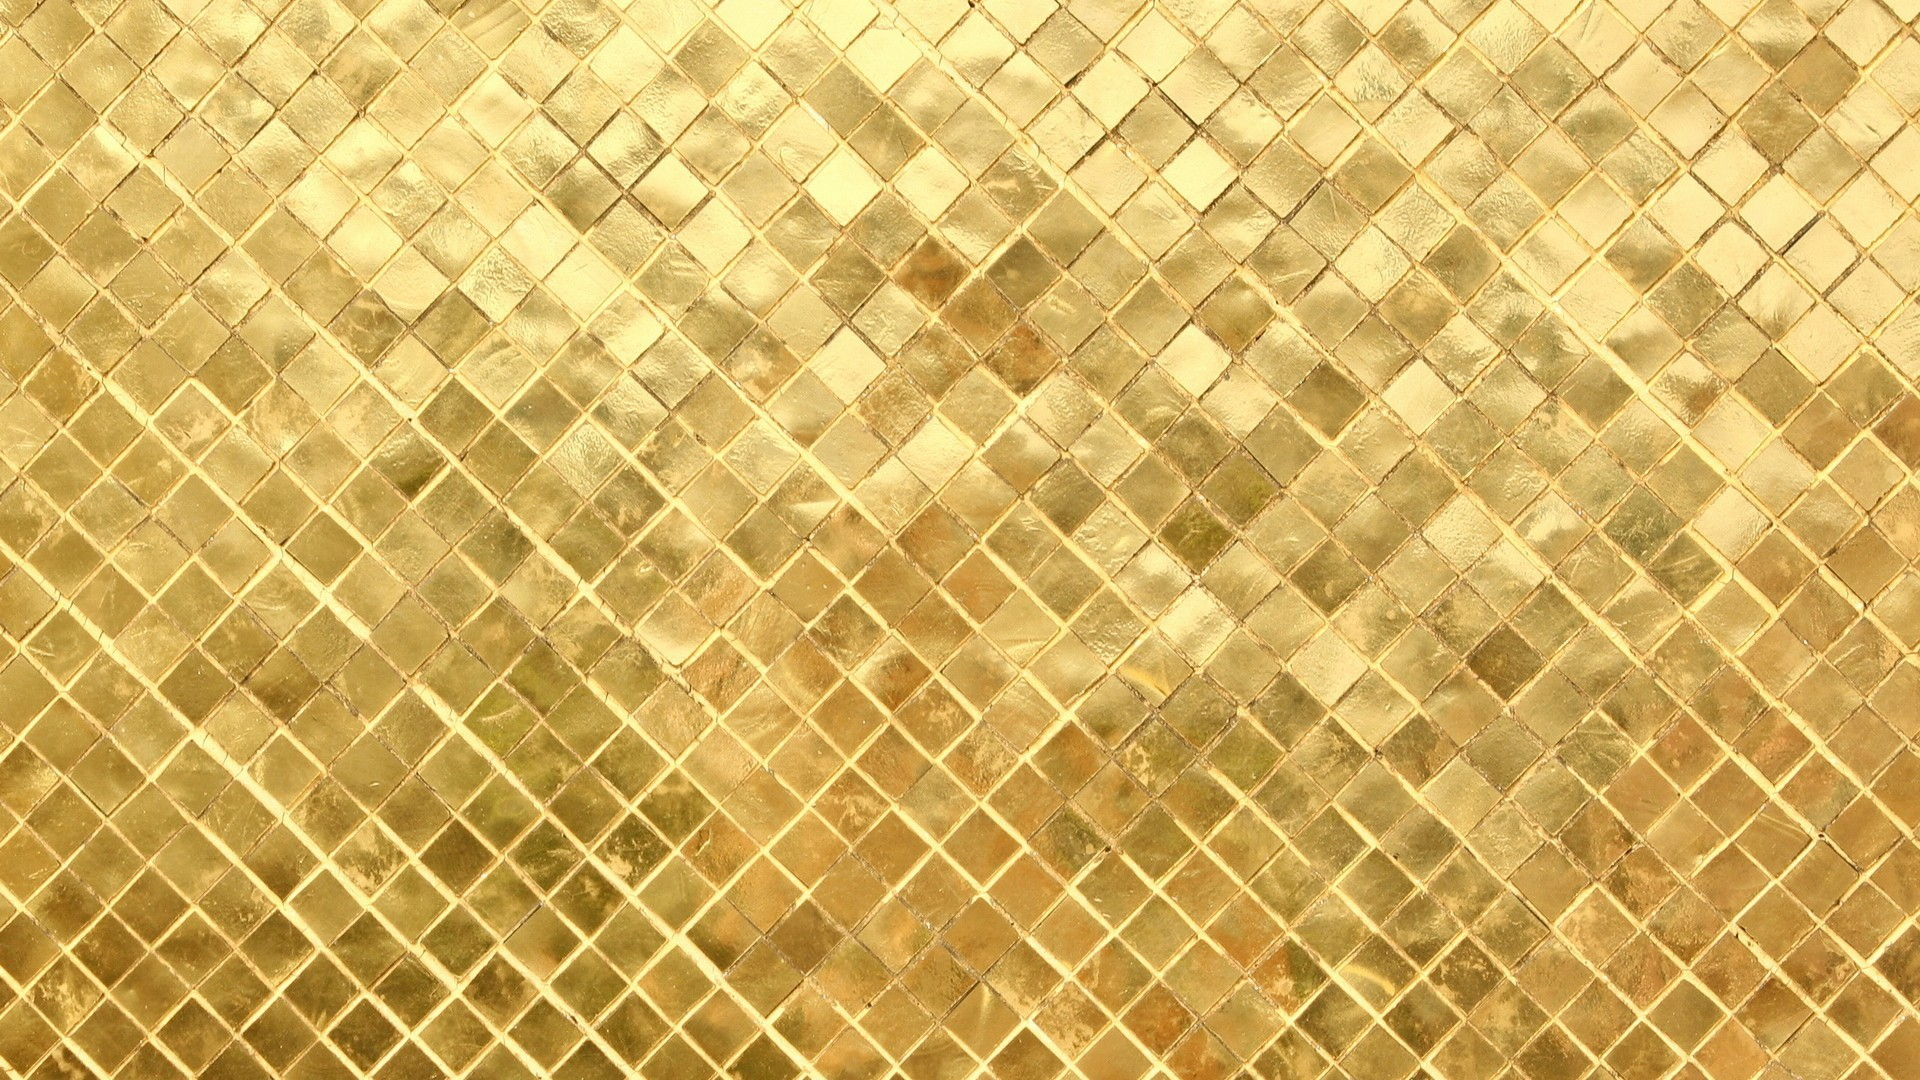 Backgrounds_Gold_tiles_082244_